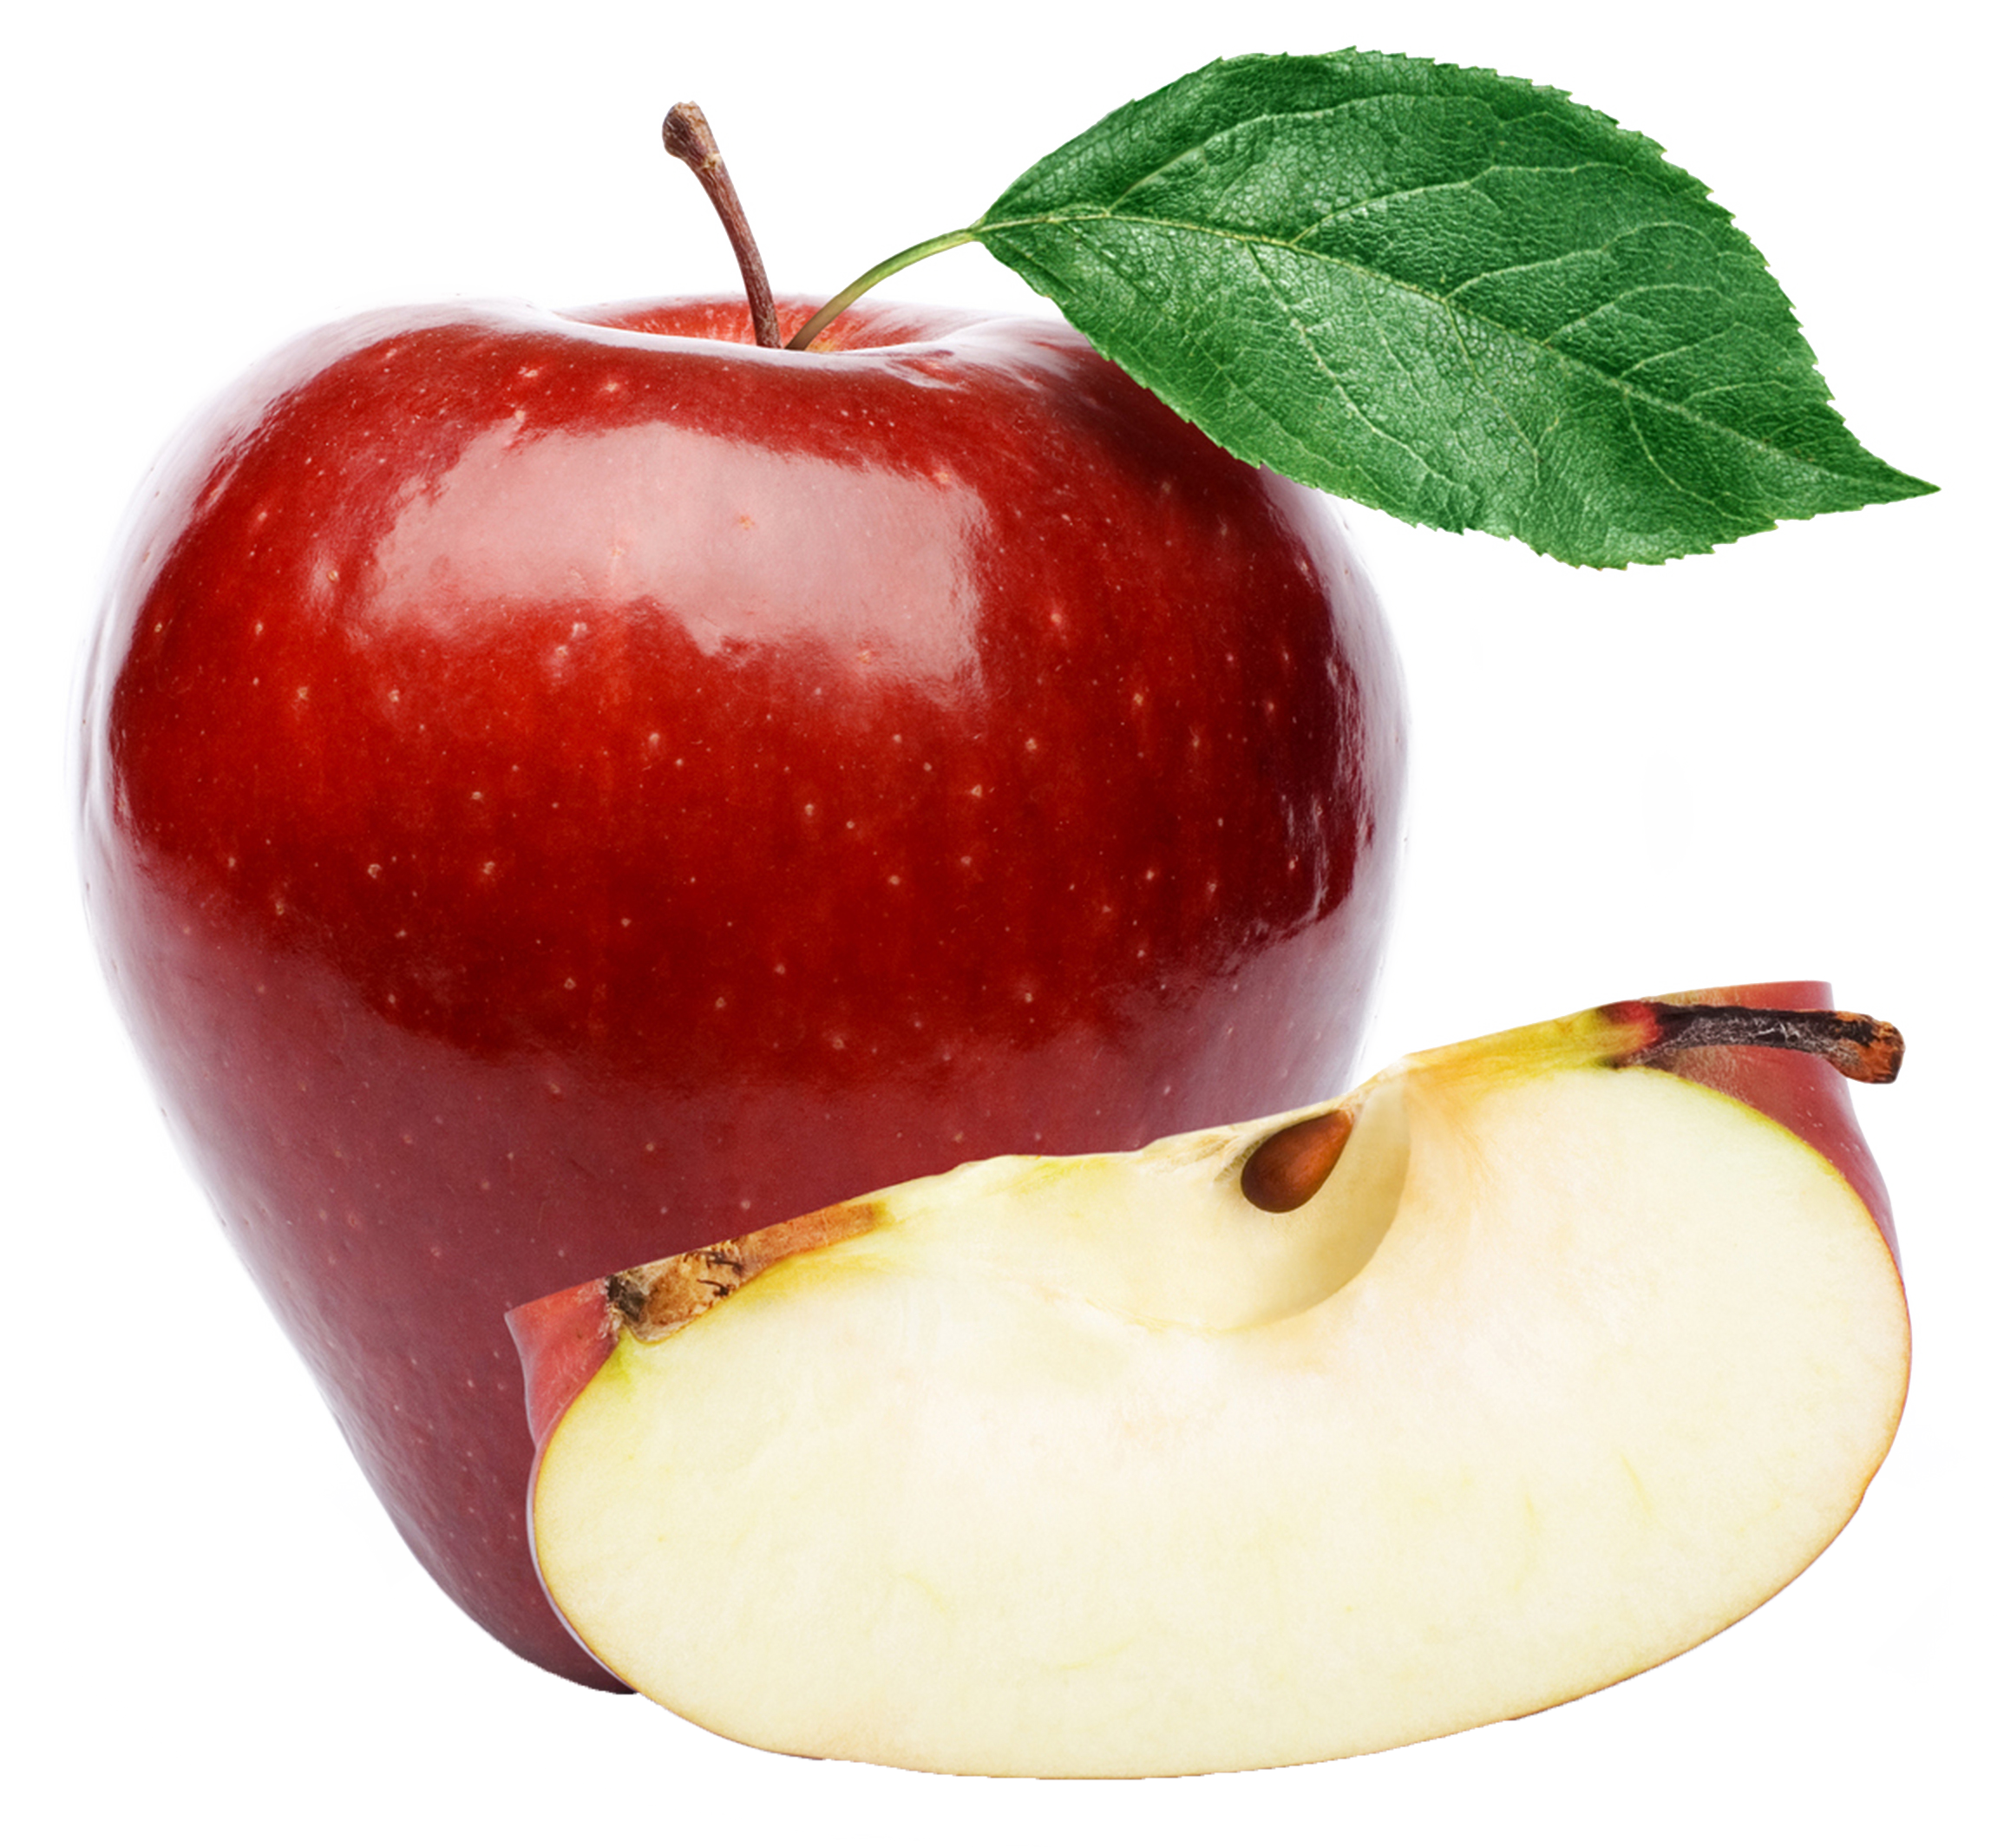 Organic apples png. Large red apple clipart